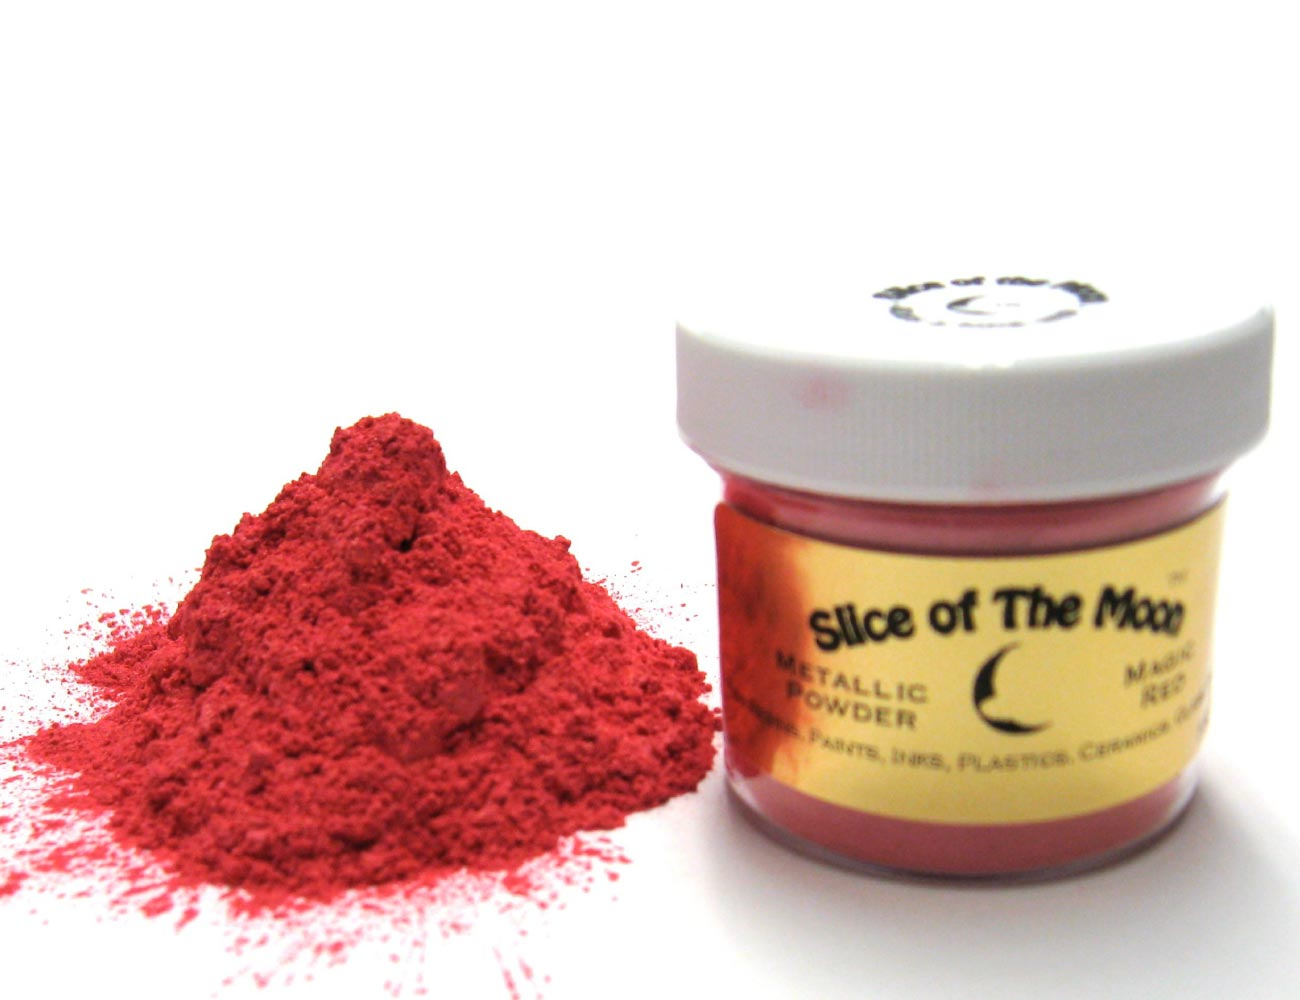 Red Mica Powder 1oz, Cosmetic Grade Mica, Slice o